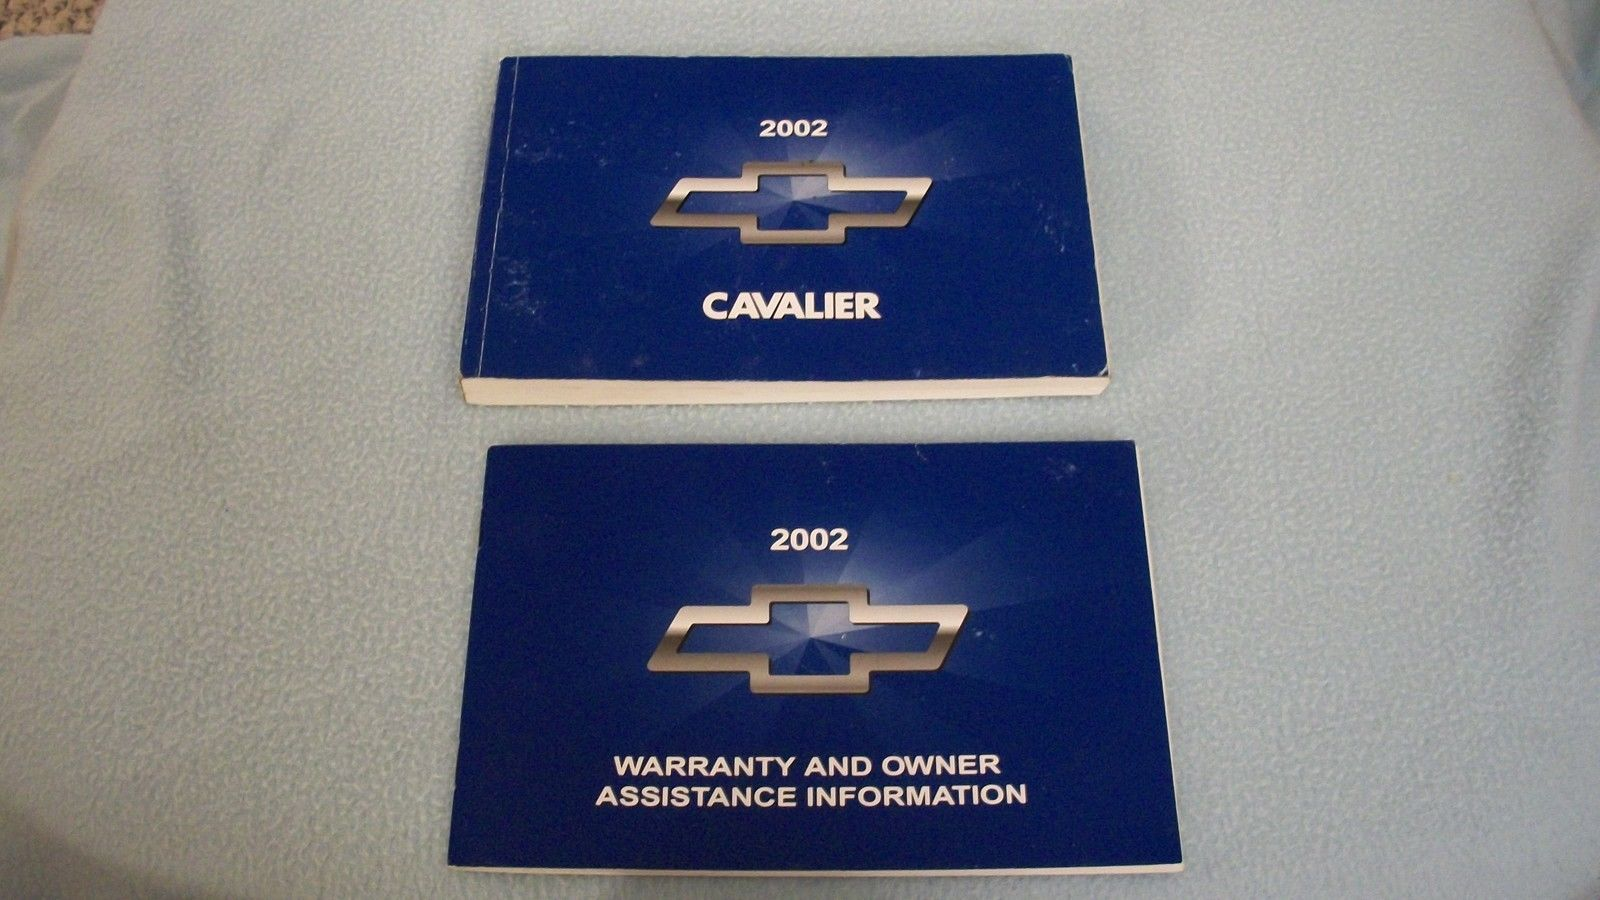 2002 chevrolet cavalier owners manual with and similar items rh bonanza com 2002 cavalier service manual 2002 cavalier service manual